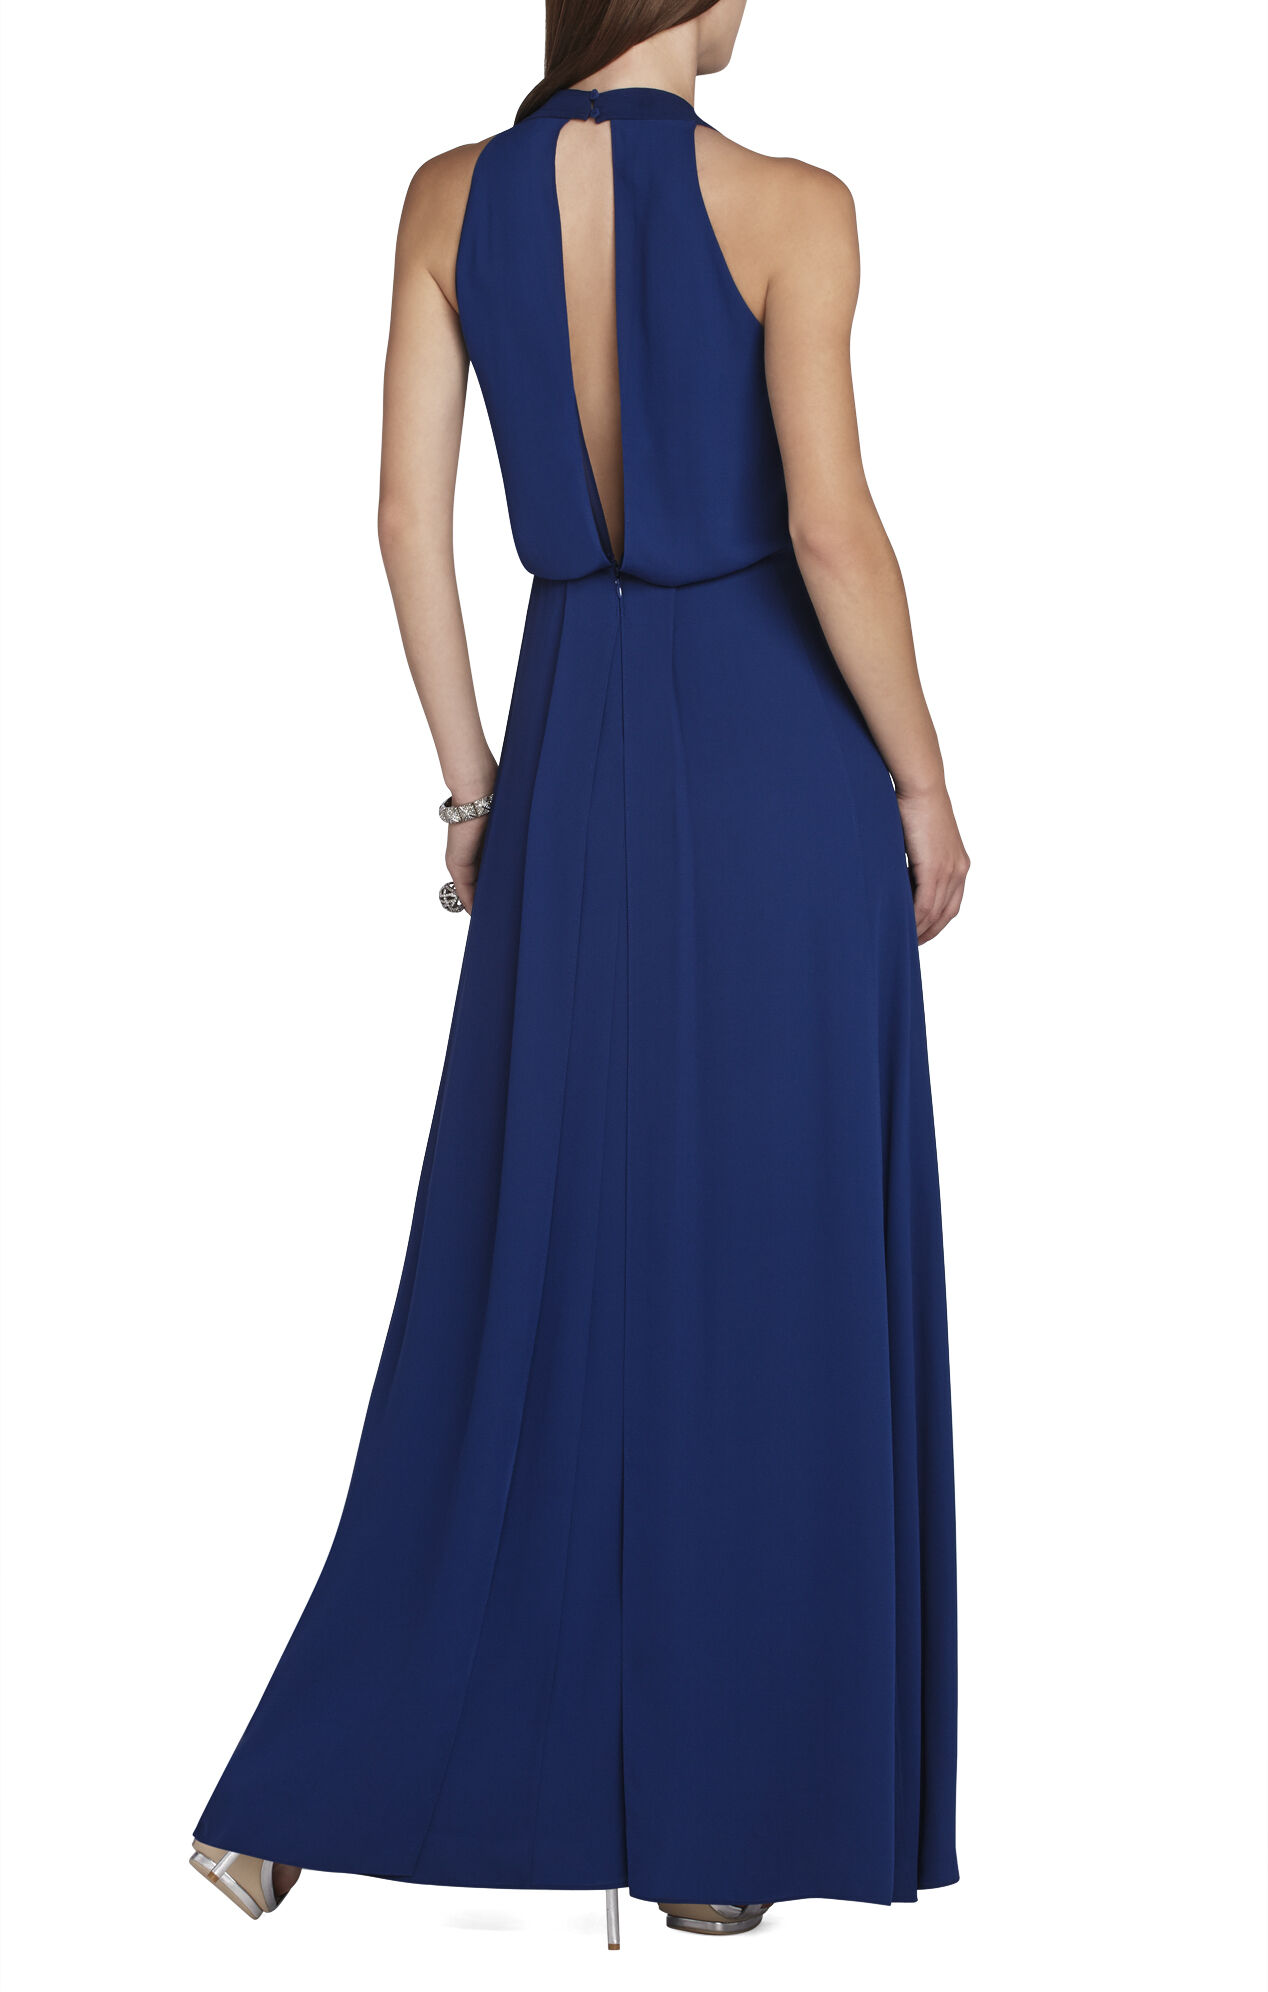 Mara Halter Evening Dress